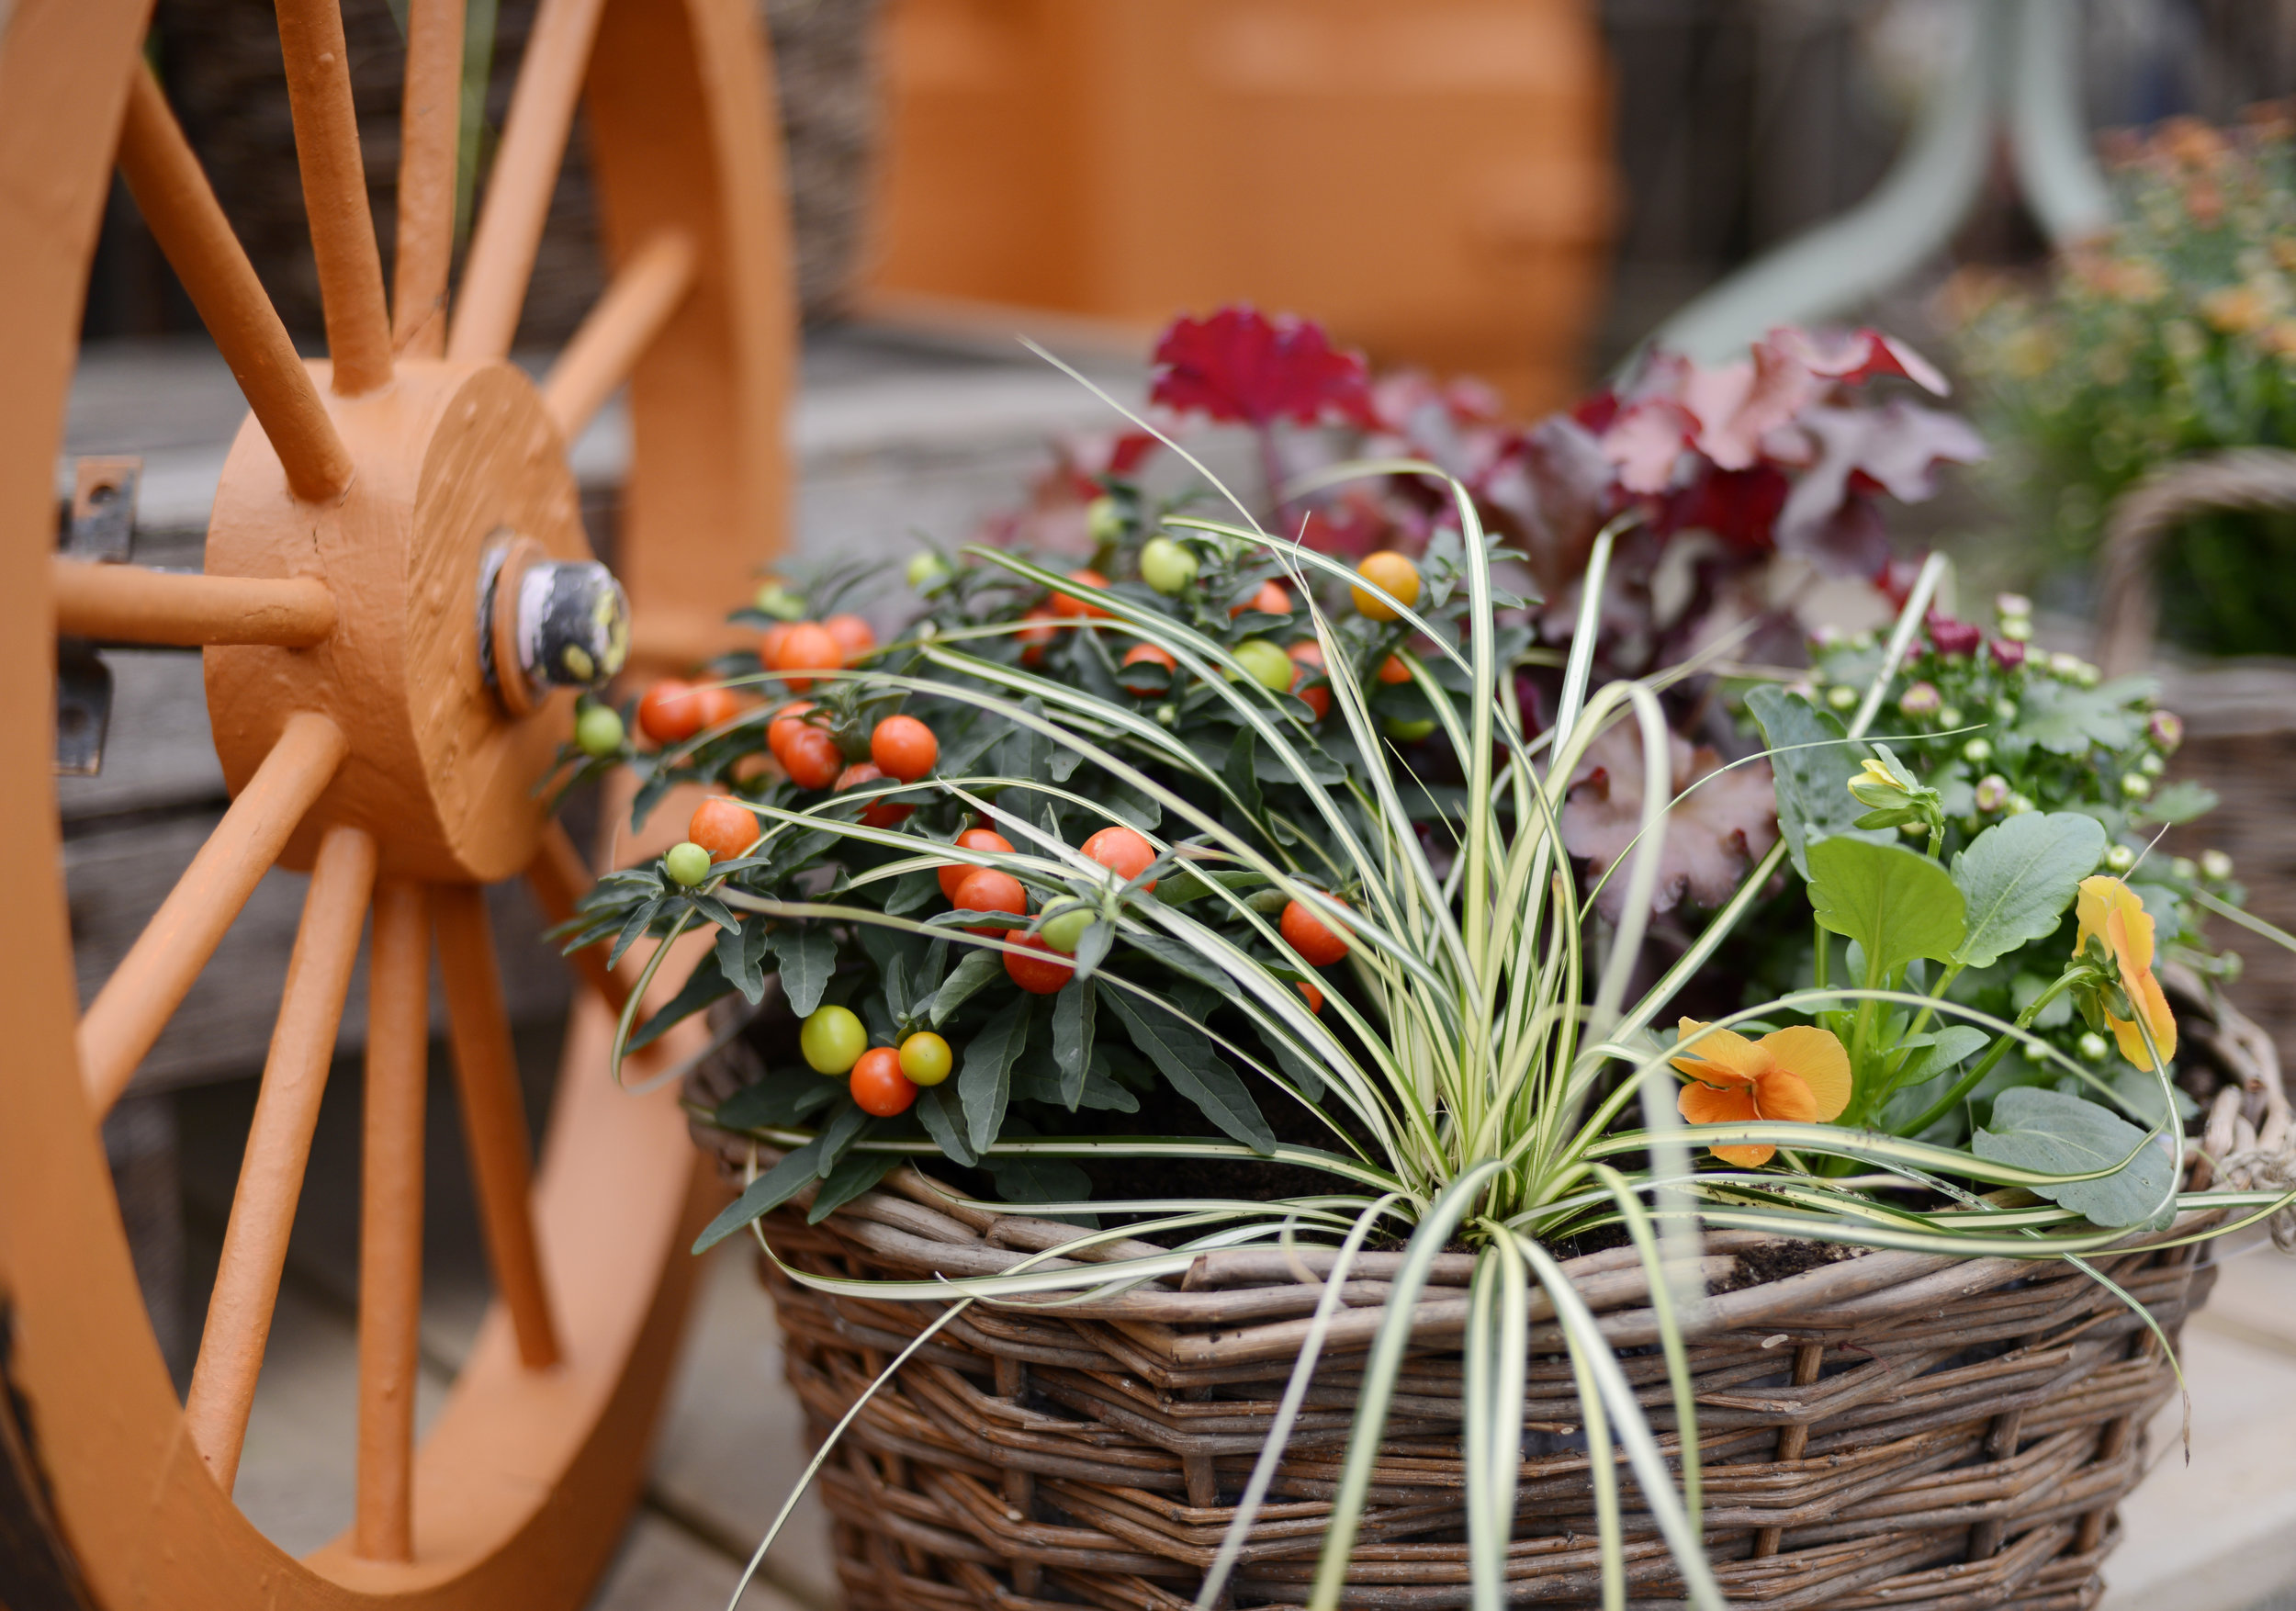 Fall in love - Be inspired and soak up our beautiful array of Autumnal displays. Our plant experts are always on hand to answer any questions and give advice for your own Autumnal equinox!